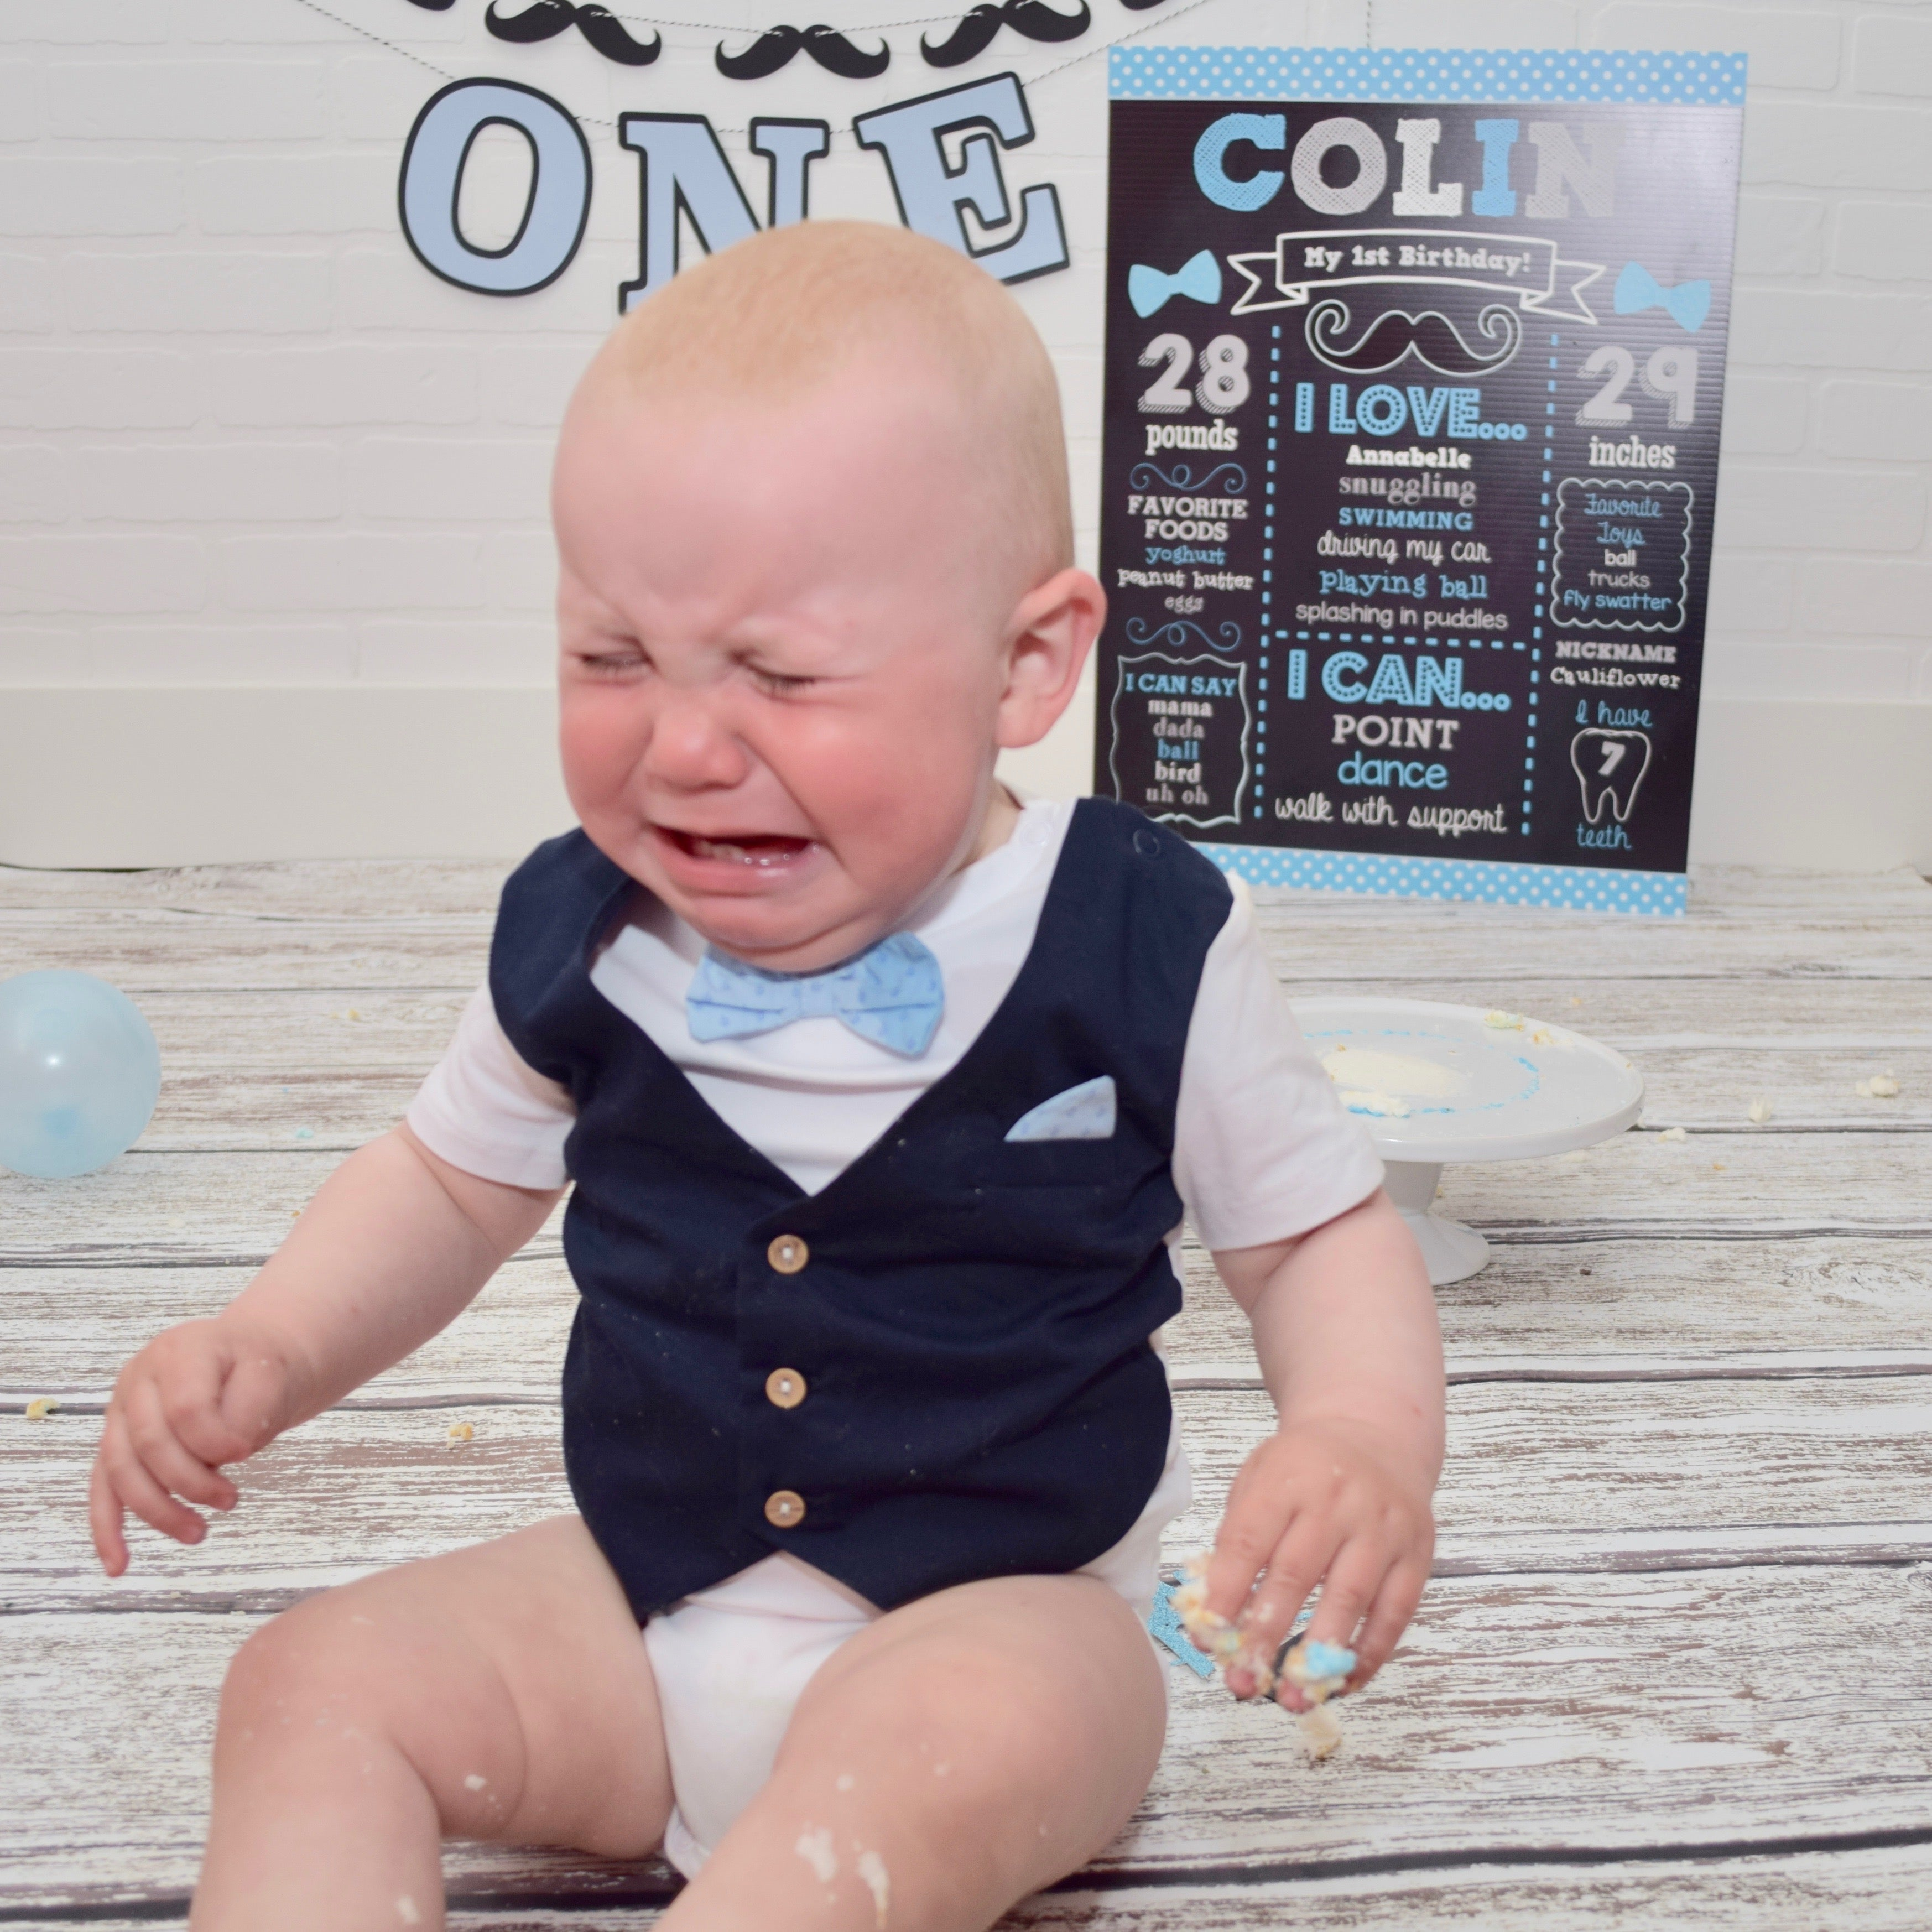 Baby cries after cake smash